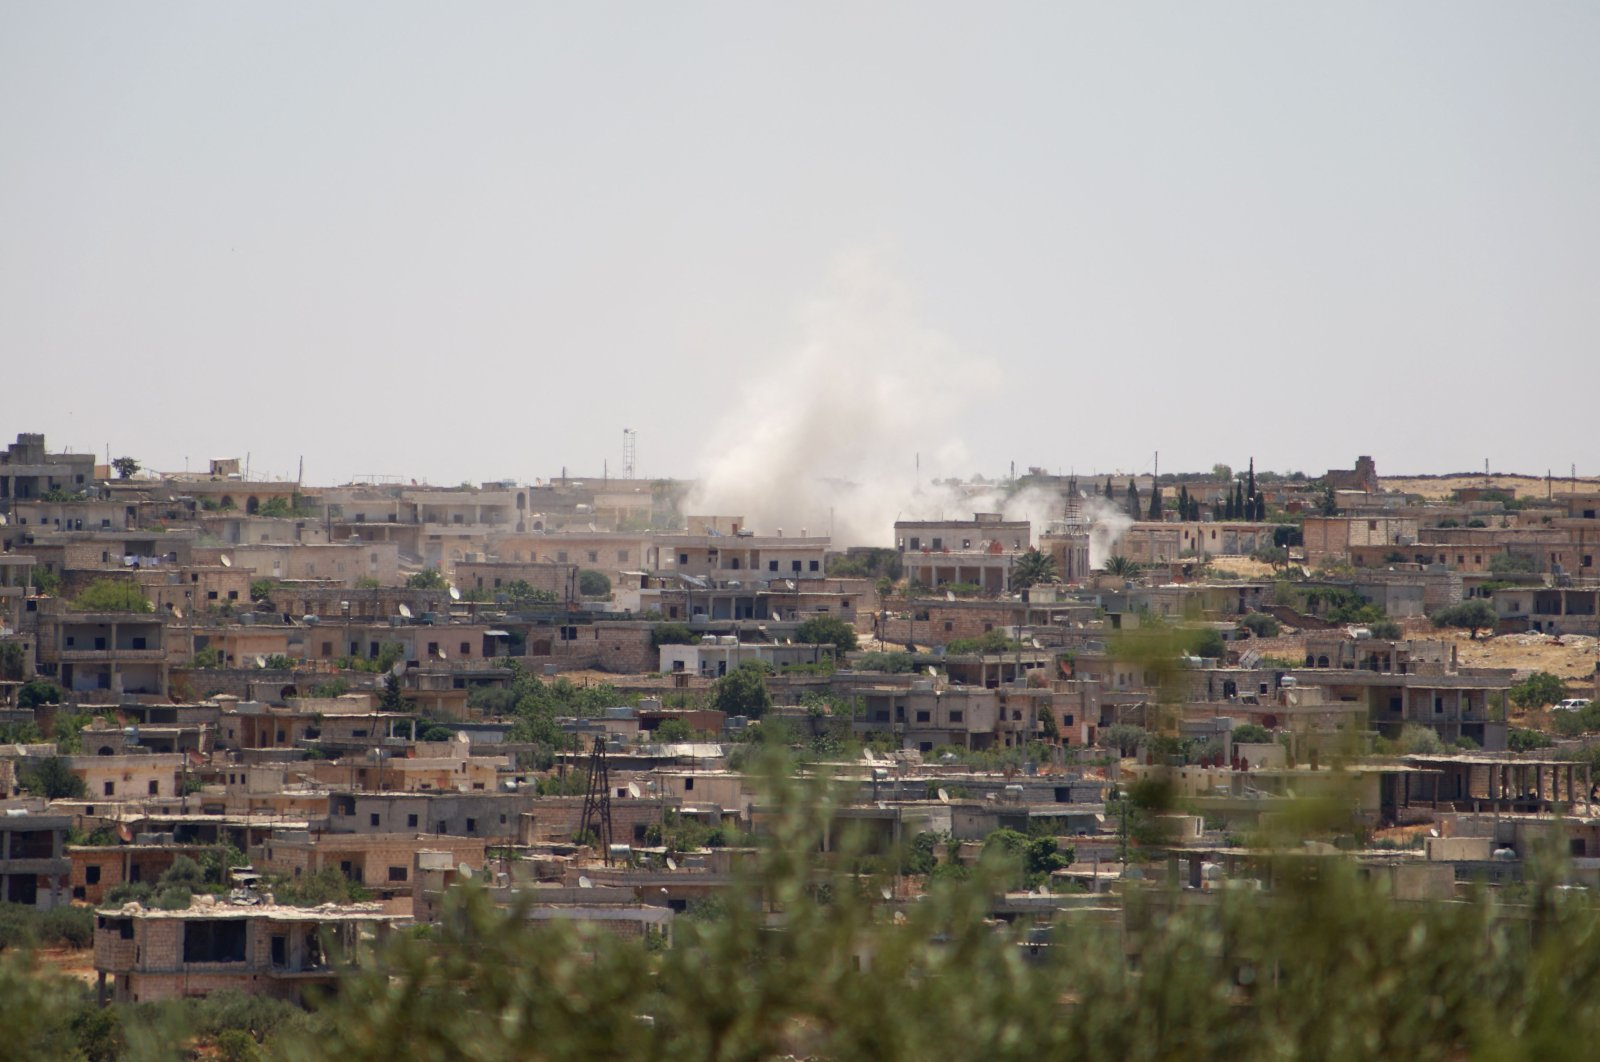 Smoke billows following a reported bombardment by regime forces in the town of Barah, Idlib province, northwestern Syria, June 21, 2021. (AFP Photo)